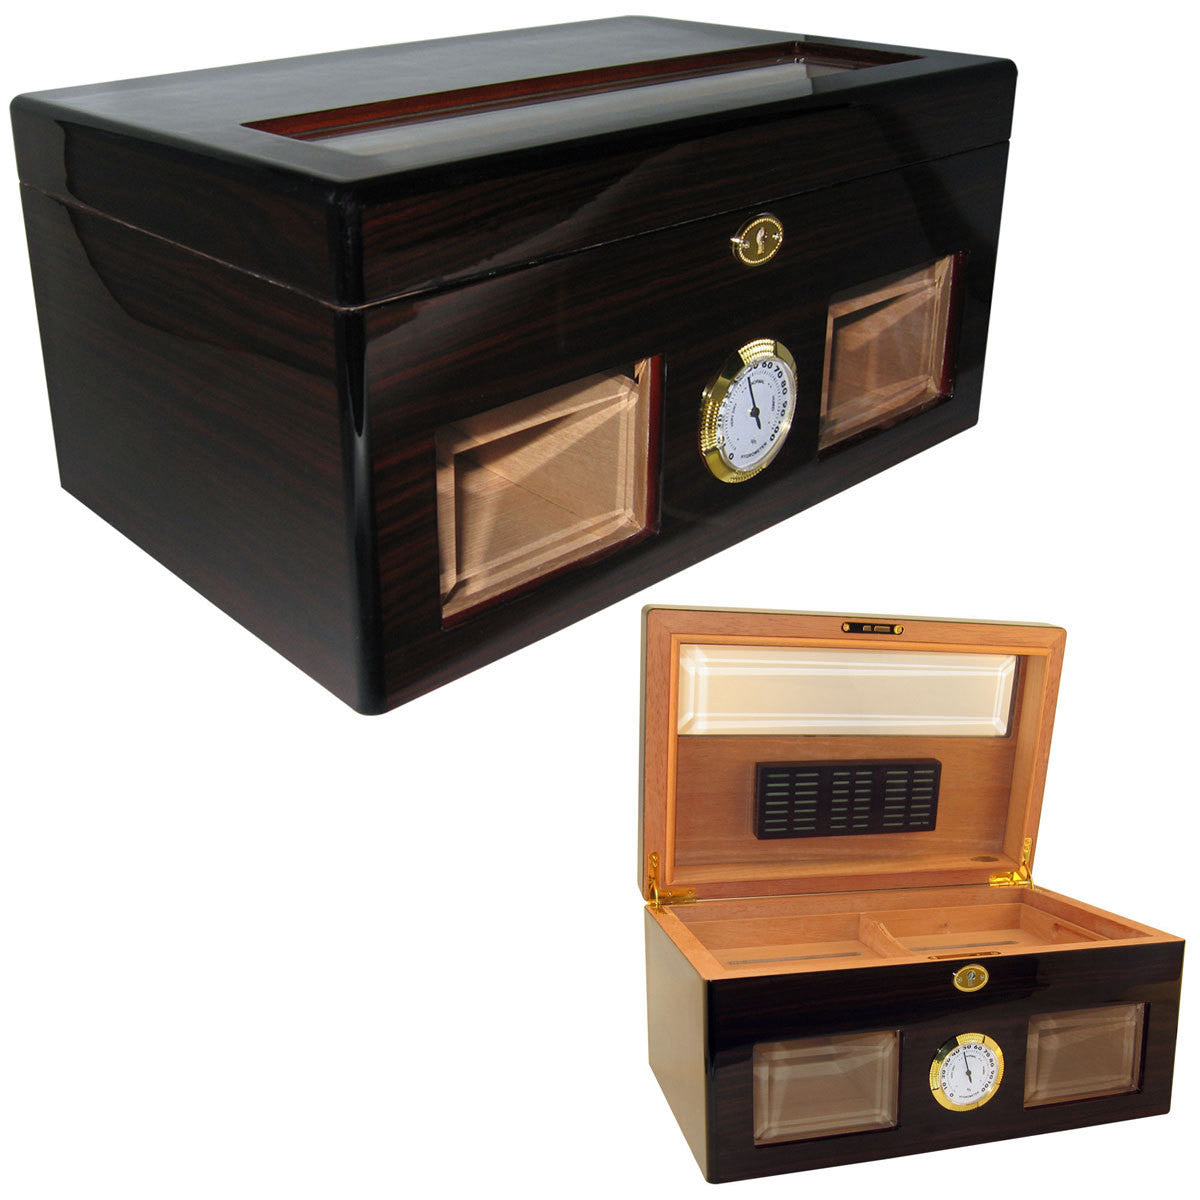 Bravo Negro Glass Top Cigar Humidor for 120 Cigars - Cigar boulevard